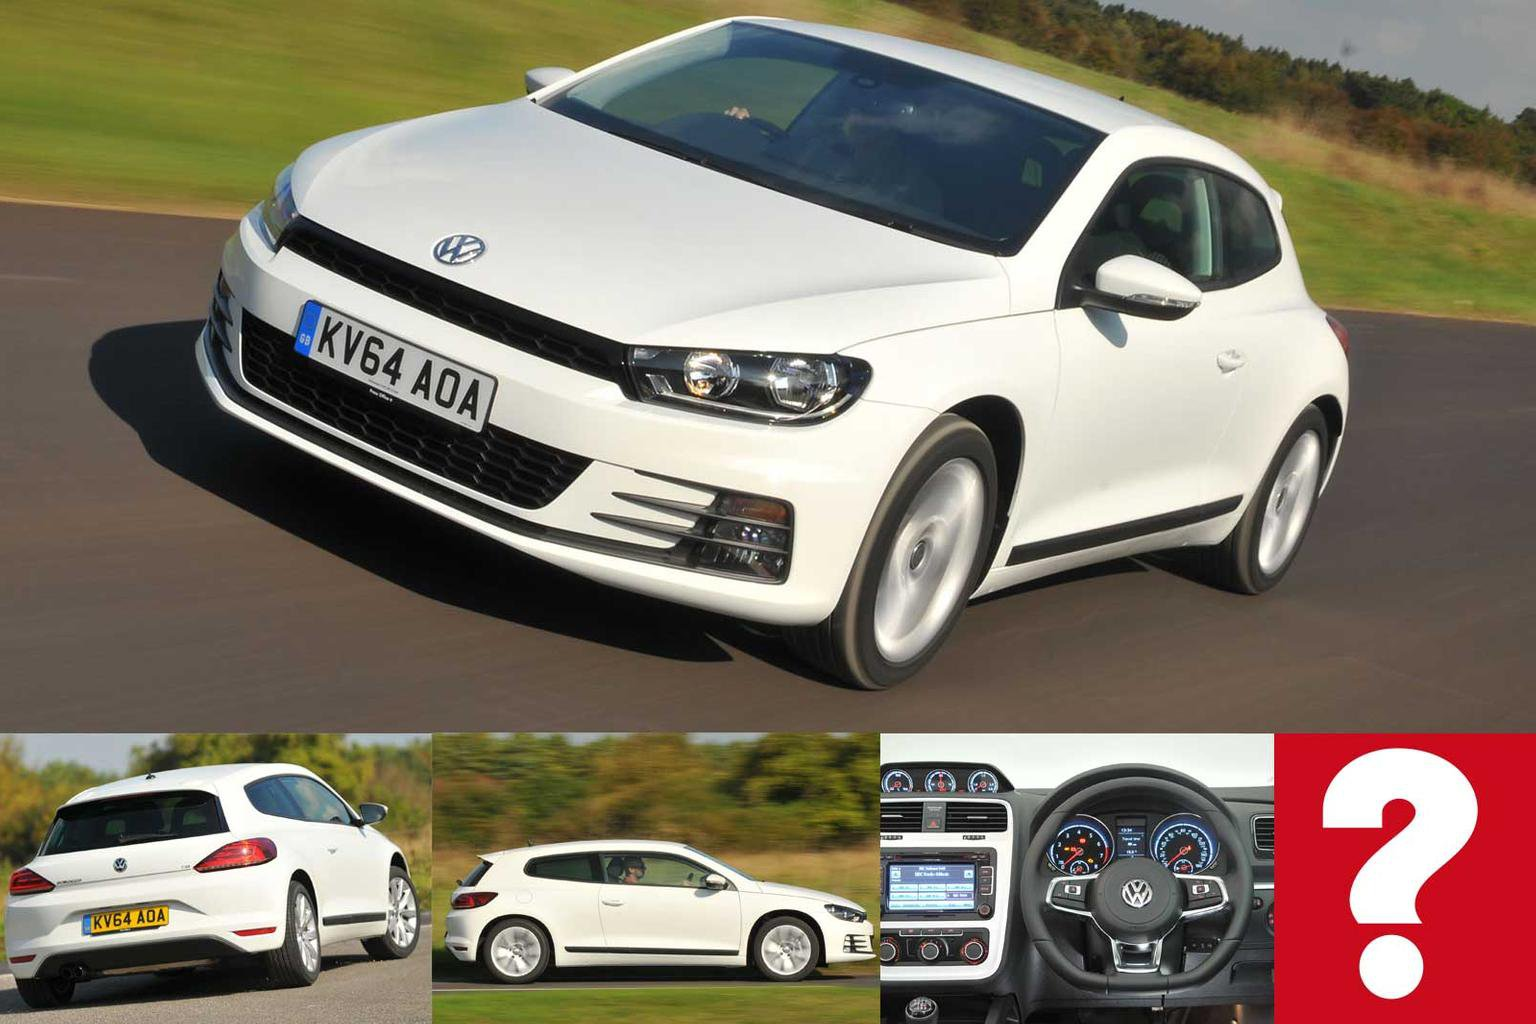 7 reasons to buy a Volkswagen Scirocco